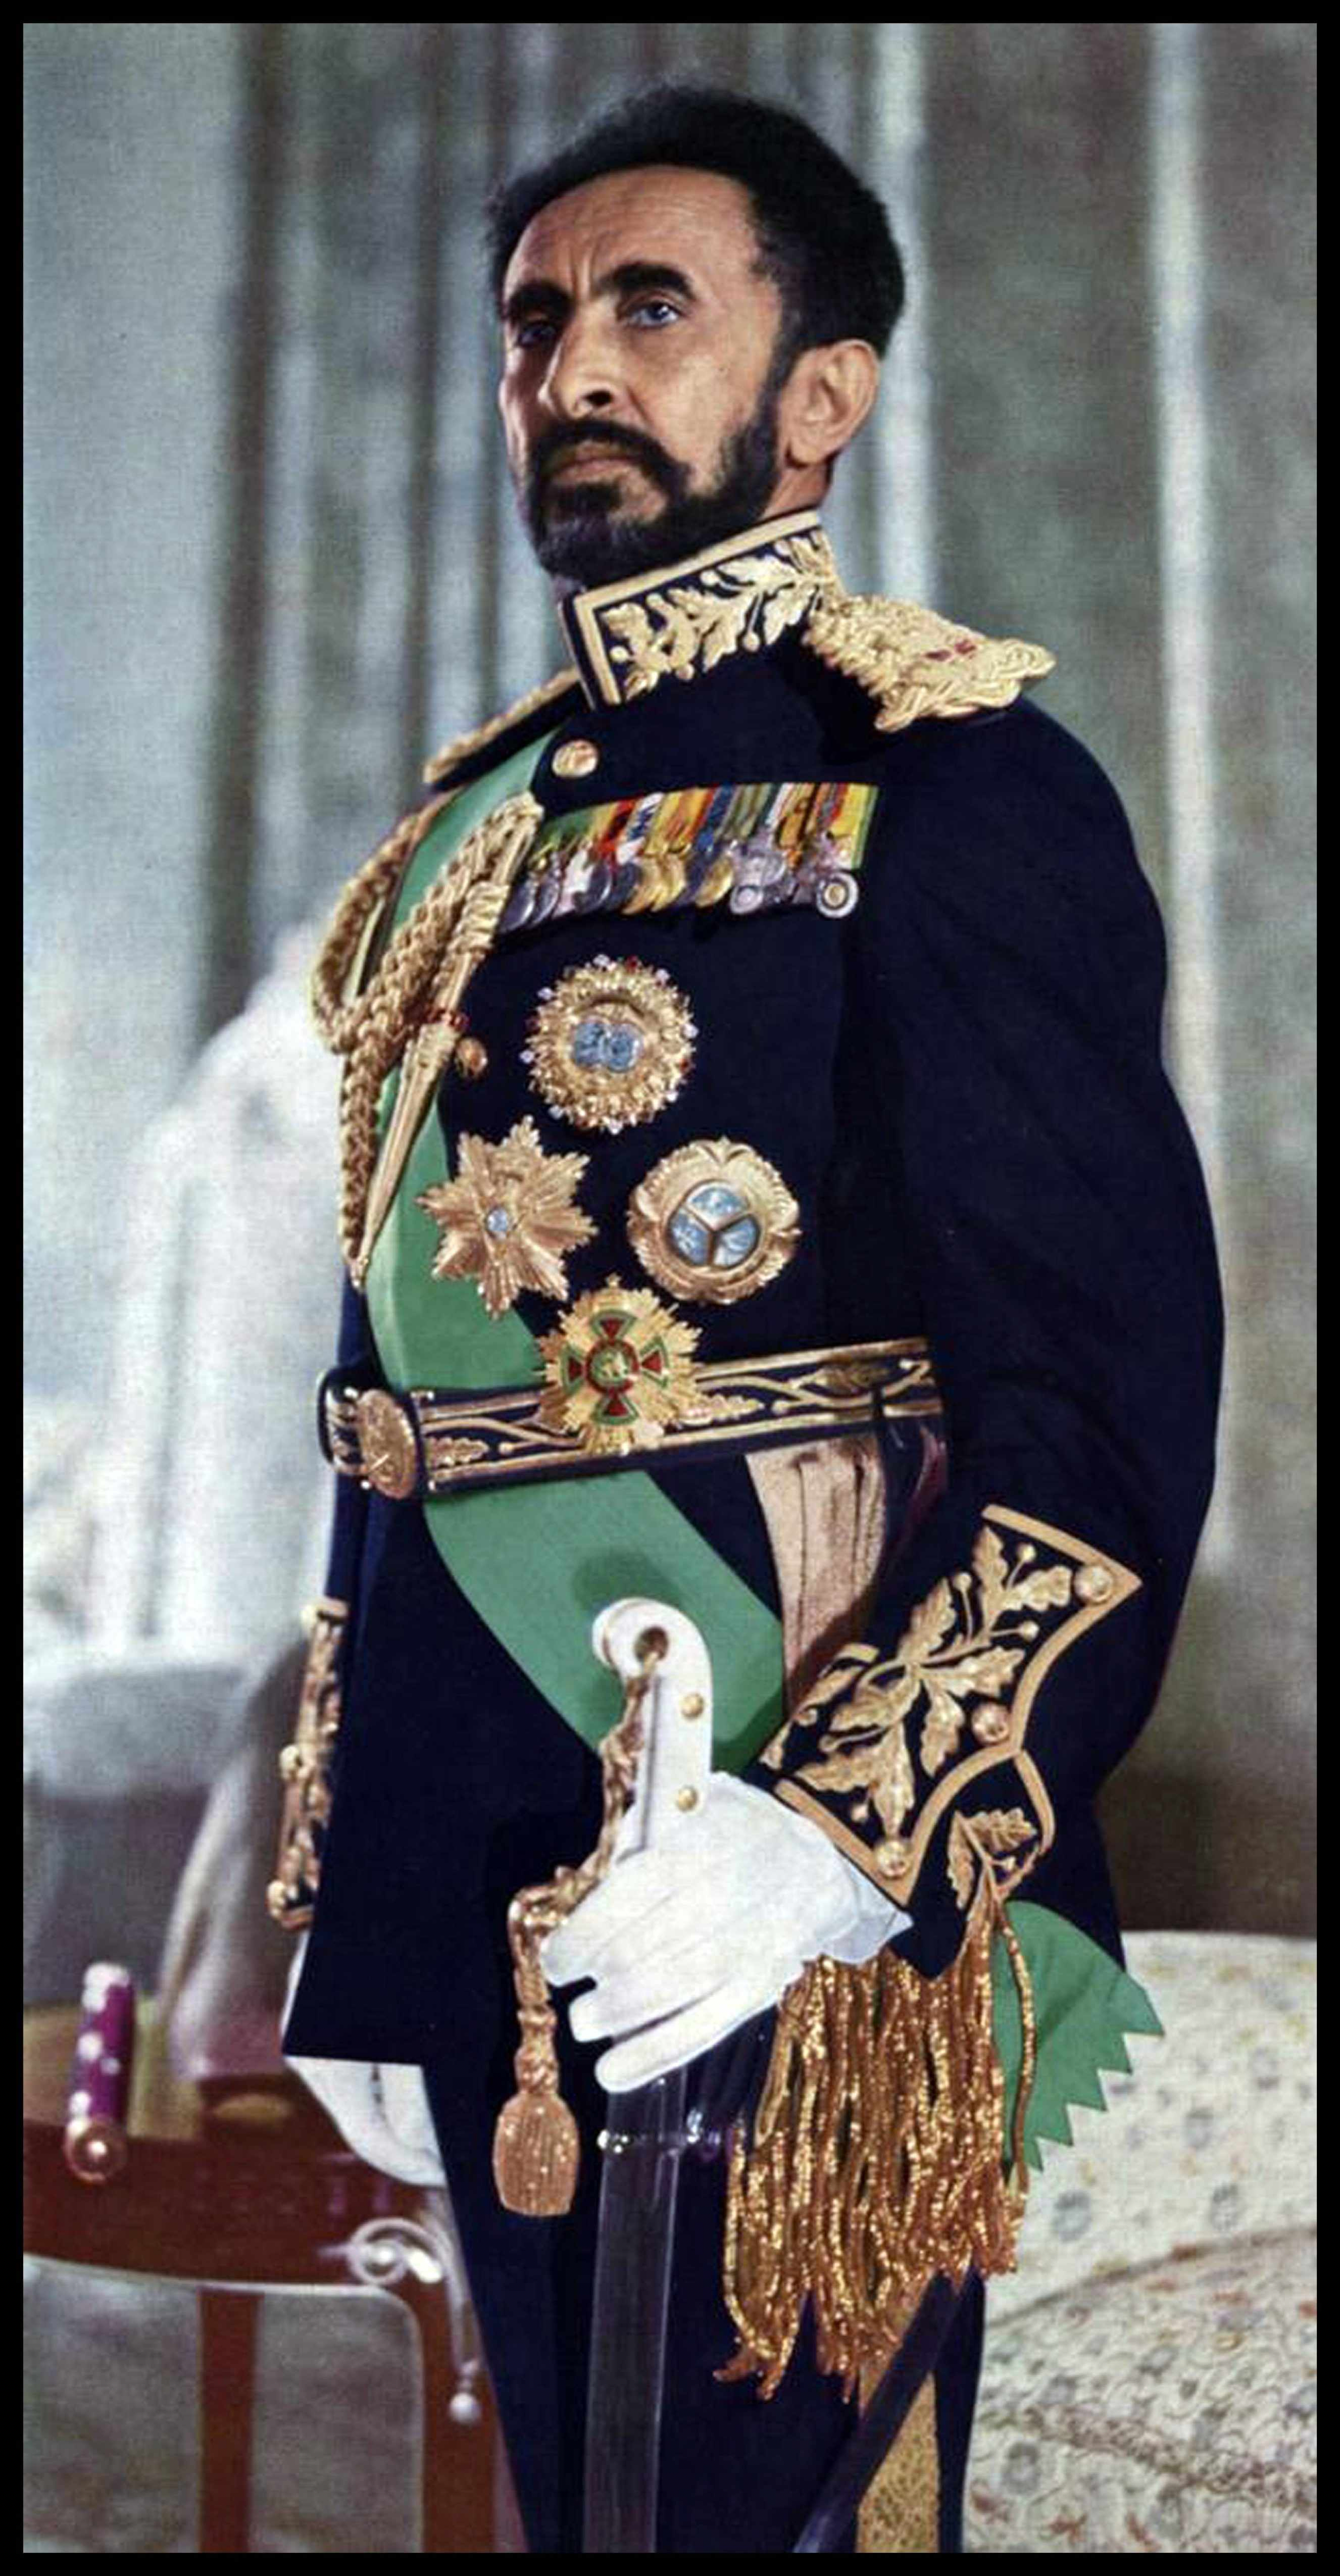 Haile Selassie in the 1970s © Getty Images